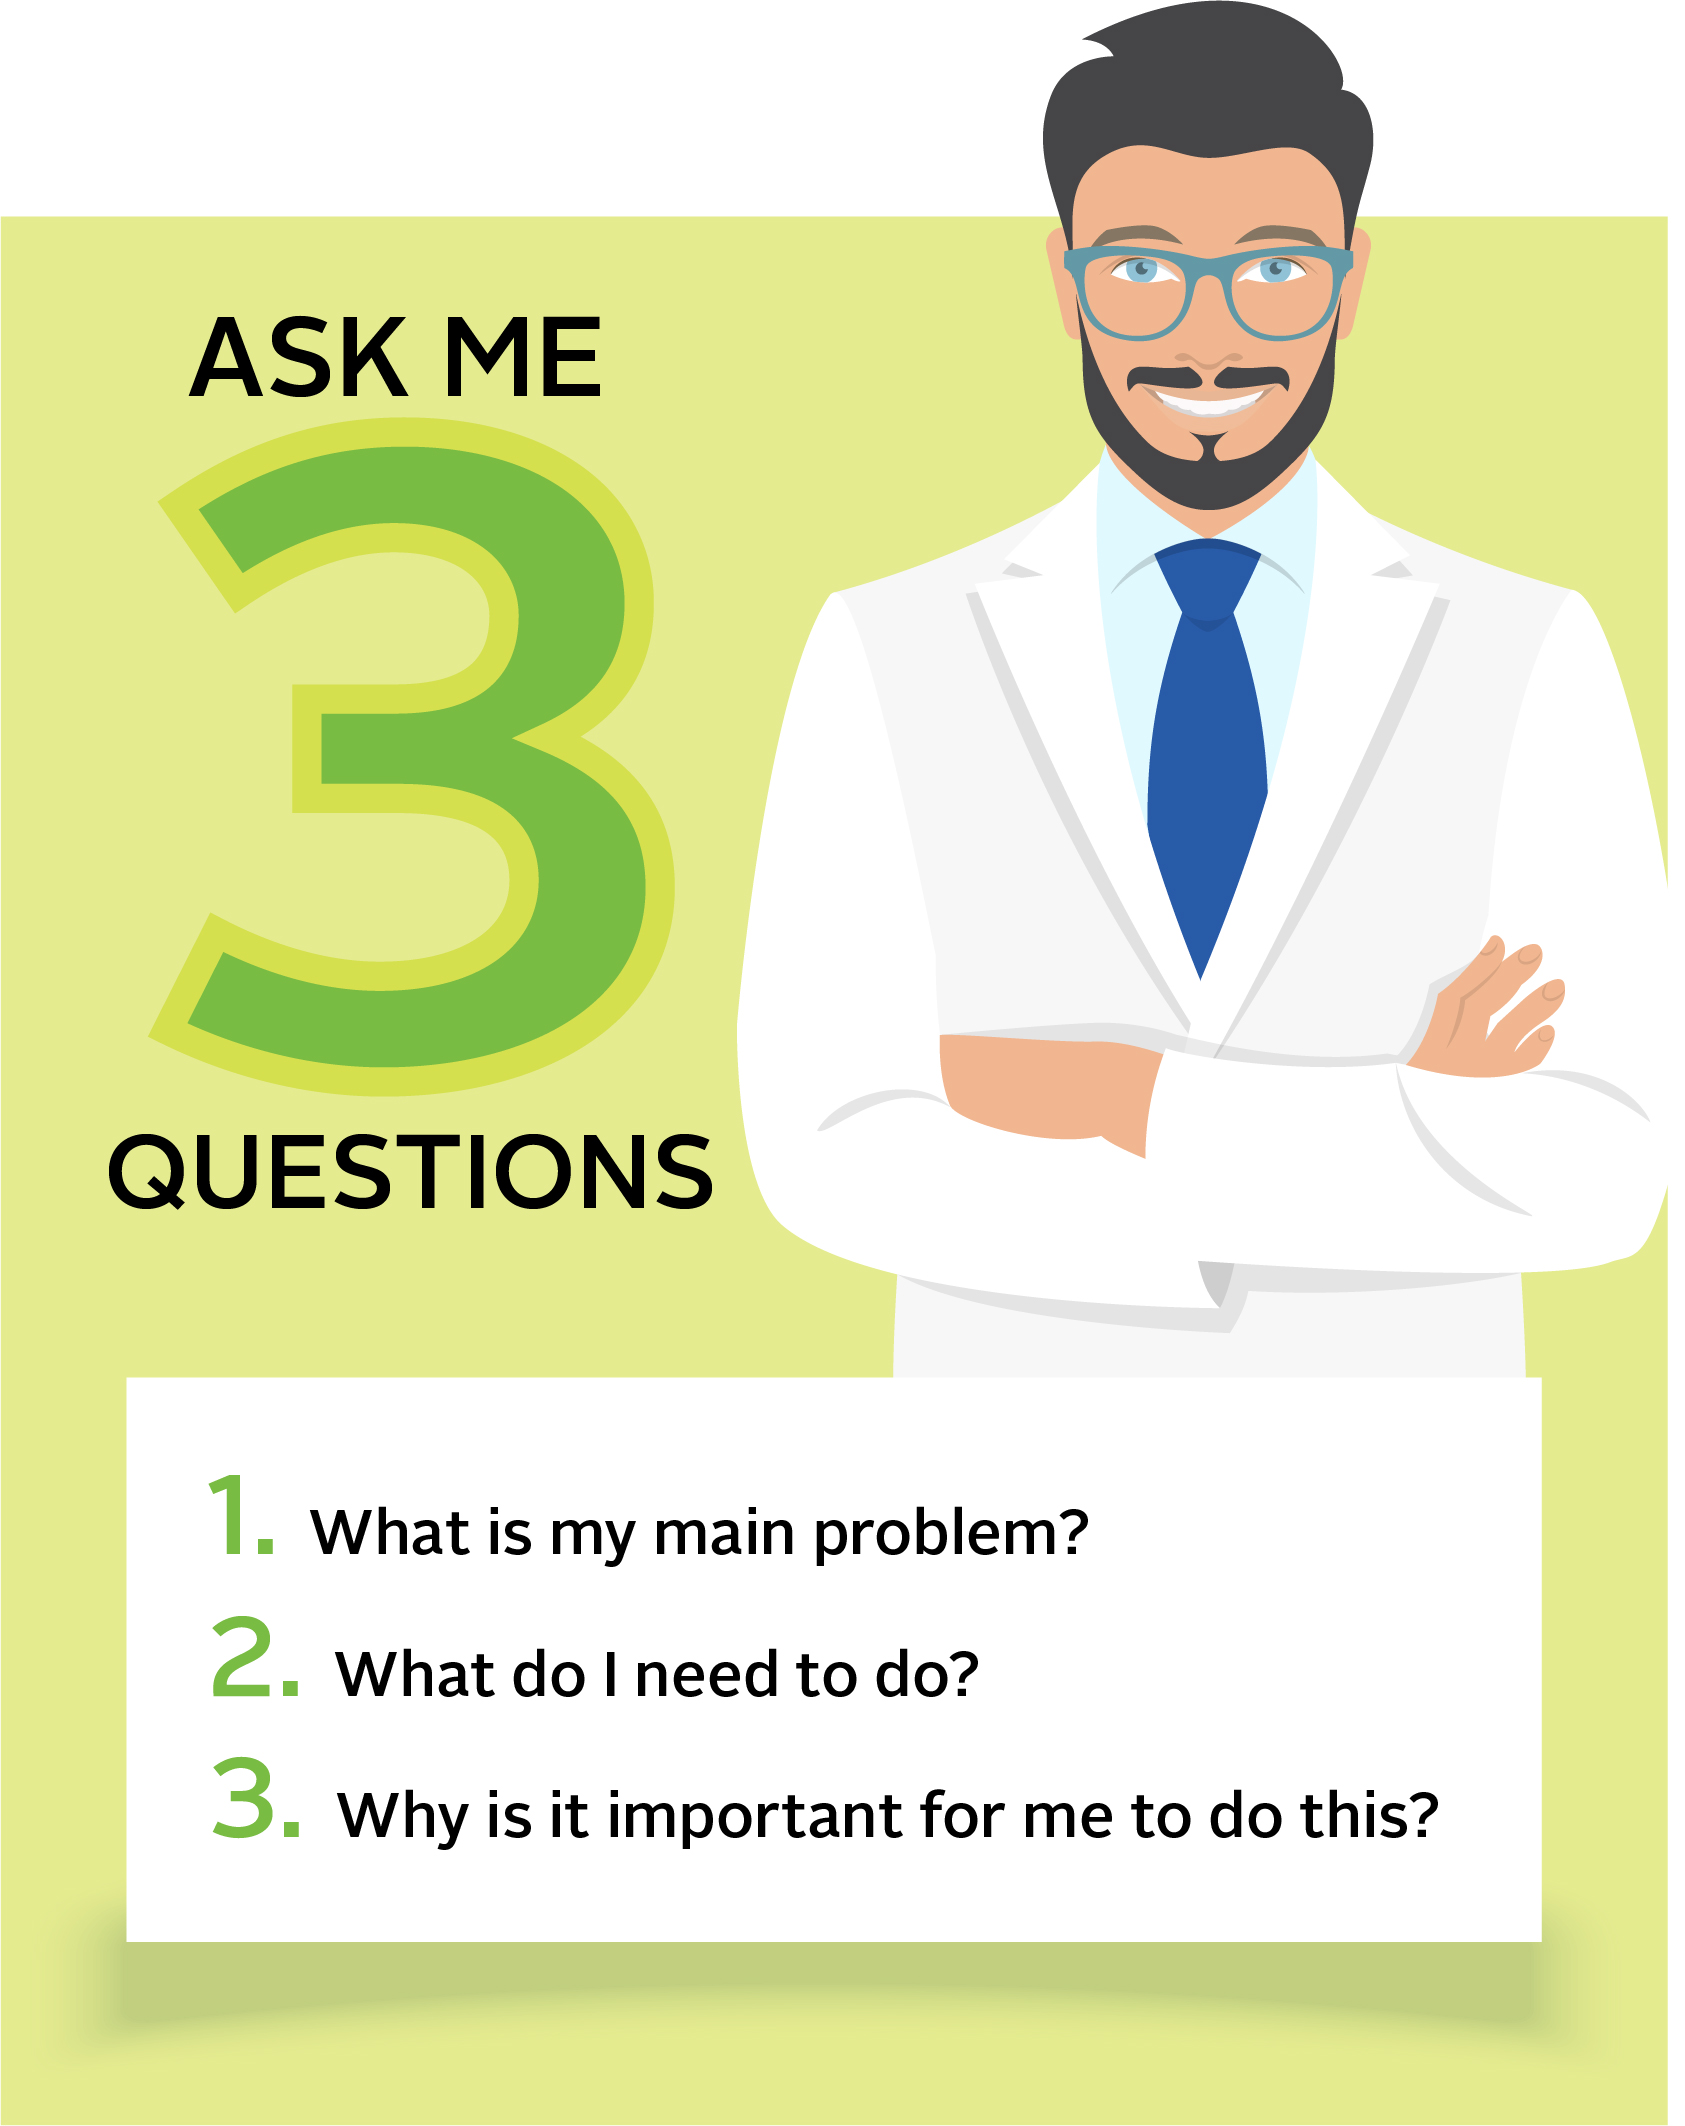 Ask Me Three Questions